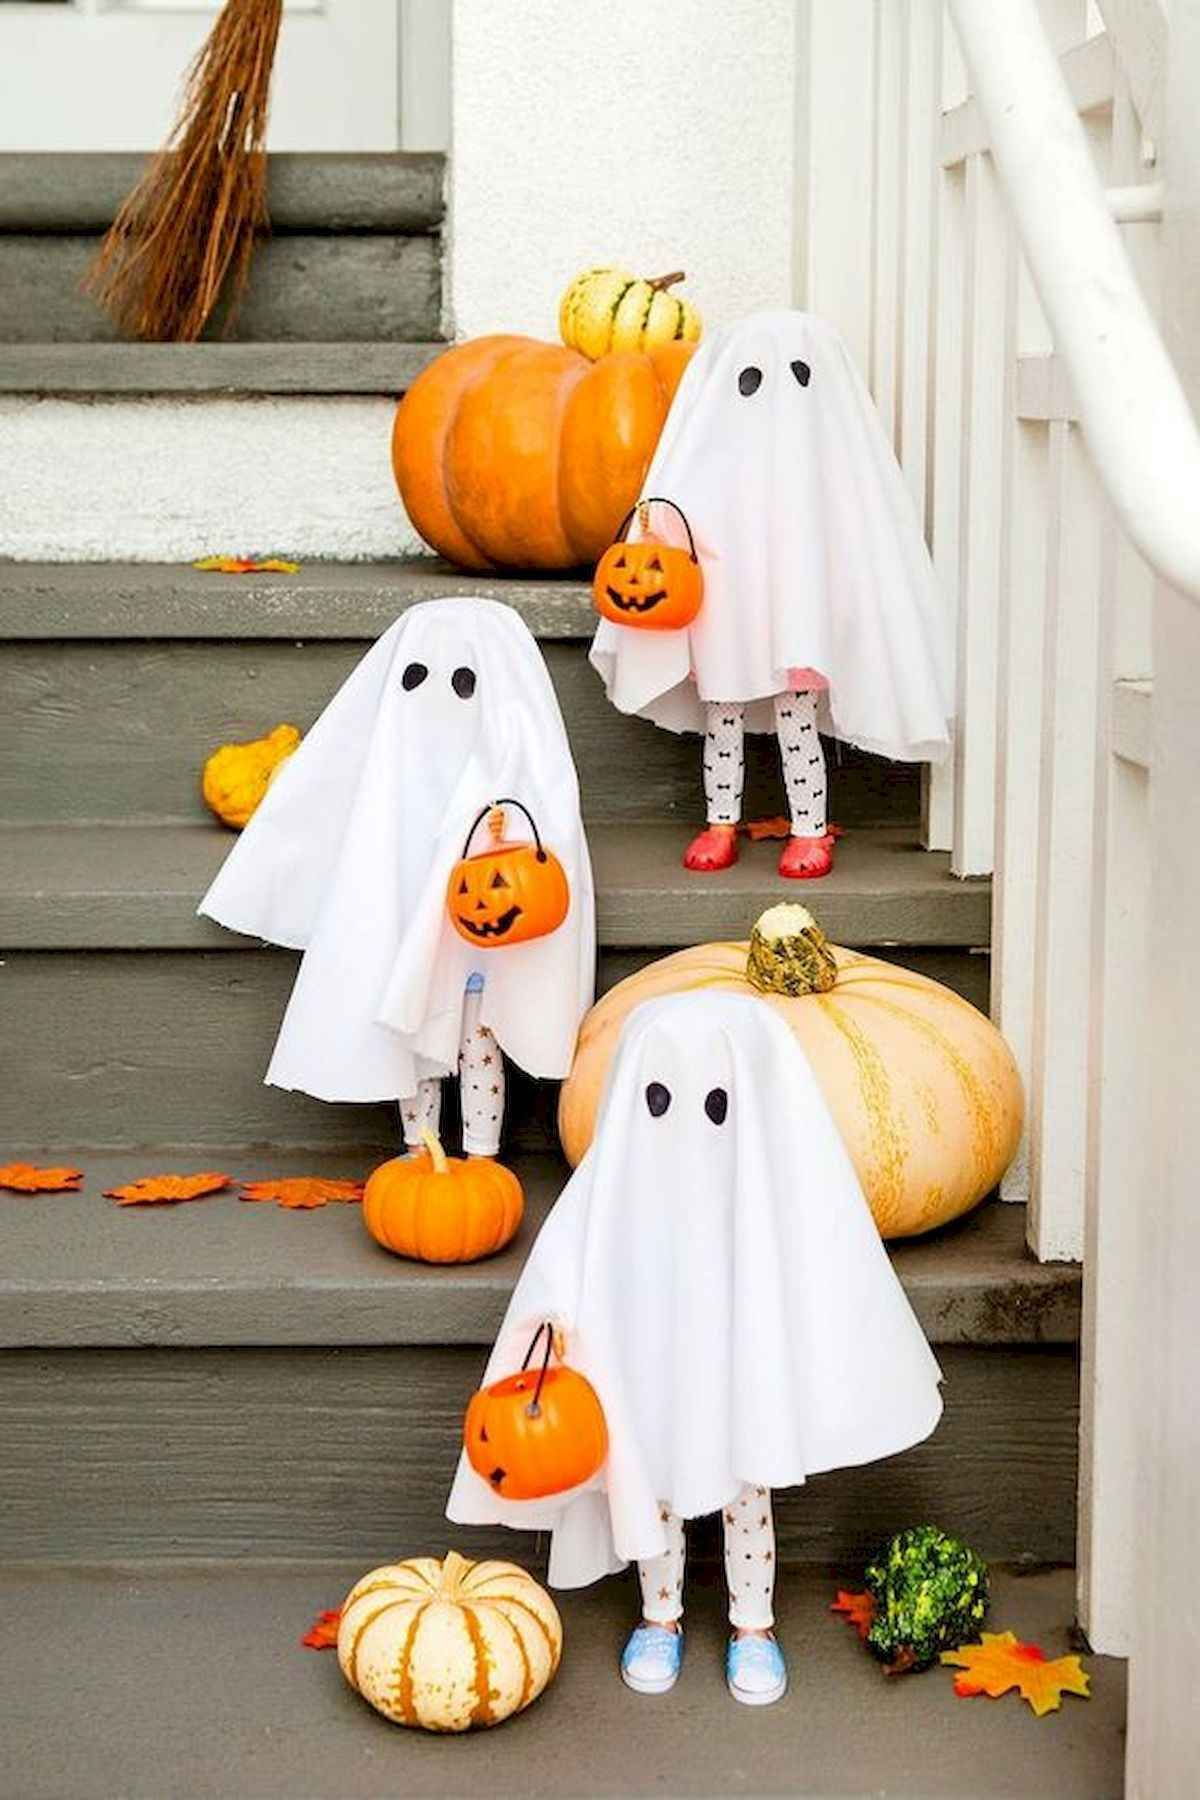 90 Awesome Diy Halloween Decorations Ideas 65 Coachdecor Com Halloween Outdoor Decorations Halloween Party Decor Fun Diy Halloween Decorations